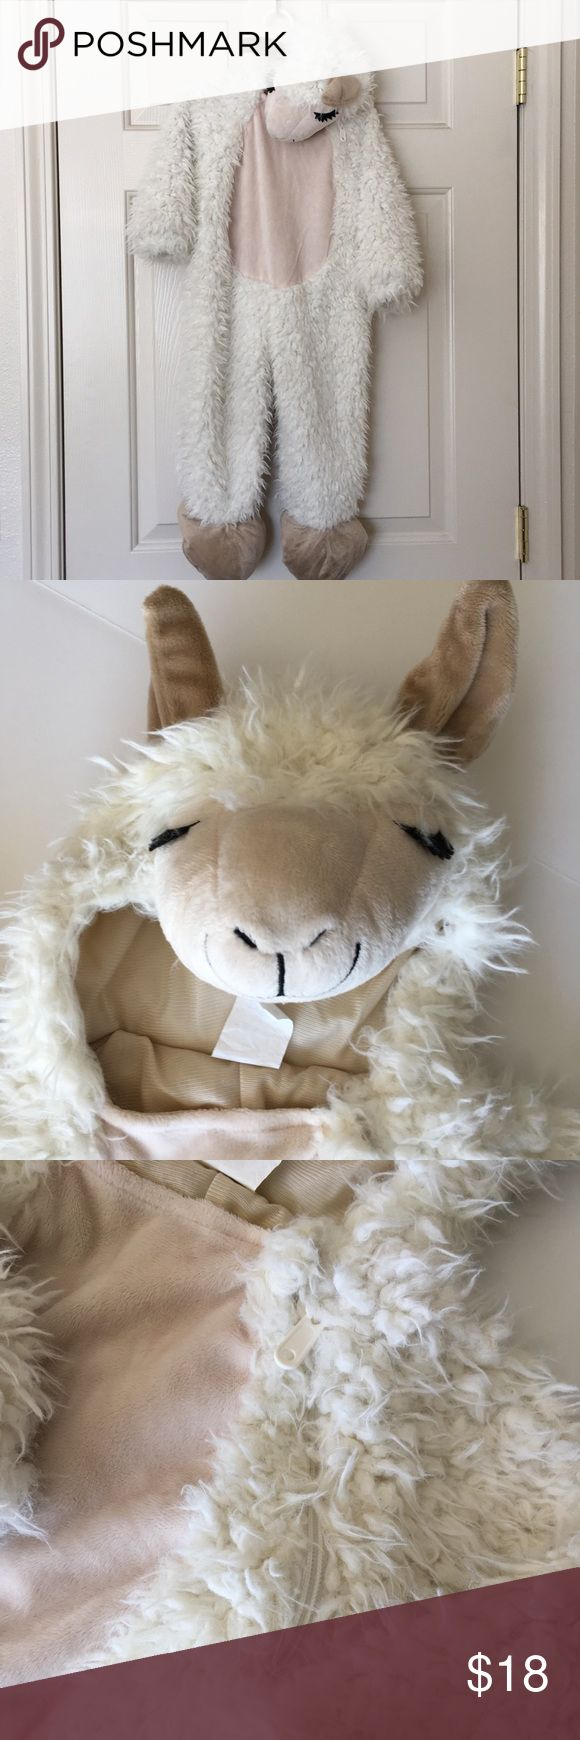 Halloween Llama Costume Get this super adorable llama costume for your little animal for dress up or Halloween.   🌿Worn once  🌿Keeps baby warm 🌿In really good condition 🌿Smoke free home Costumes Halloween